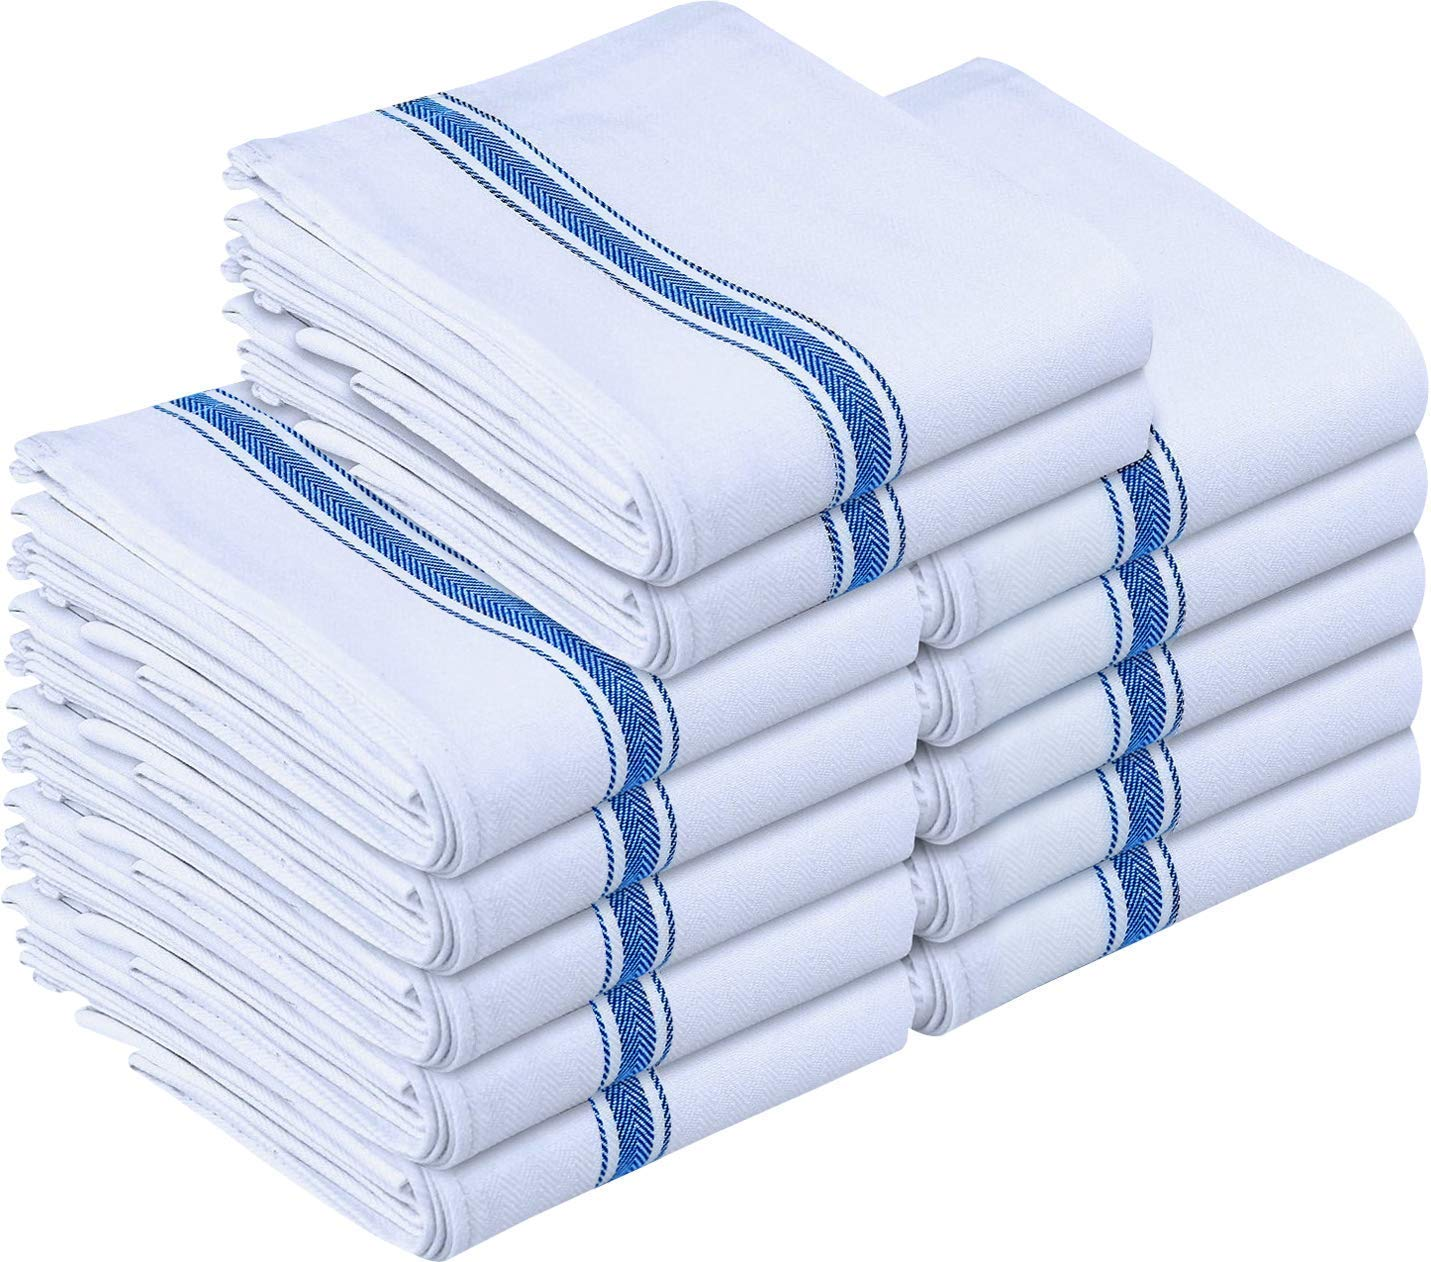 Utopia Towels 12- Pack White 100% Cotton Kitchen Towels 15 x 25 inches, Dish Towels, Bar Towels & Tea Towels